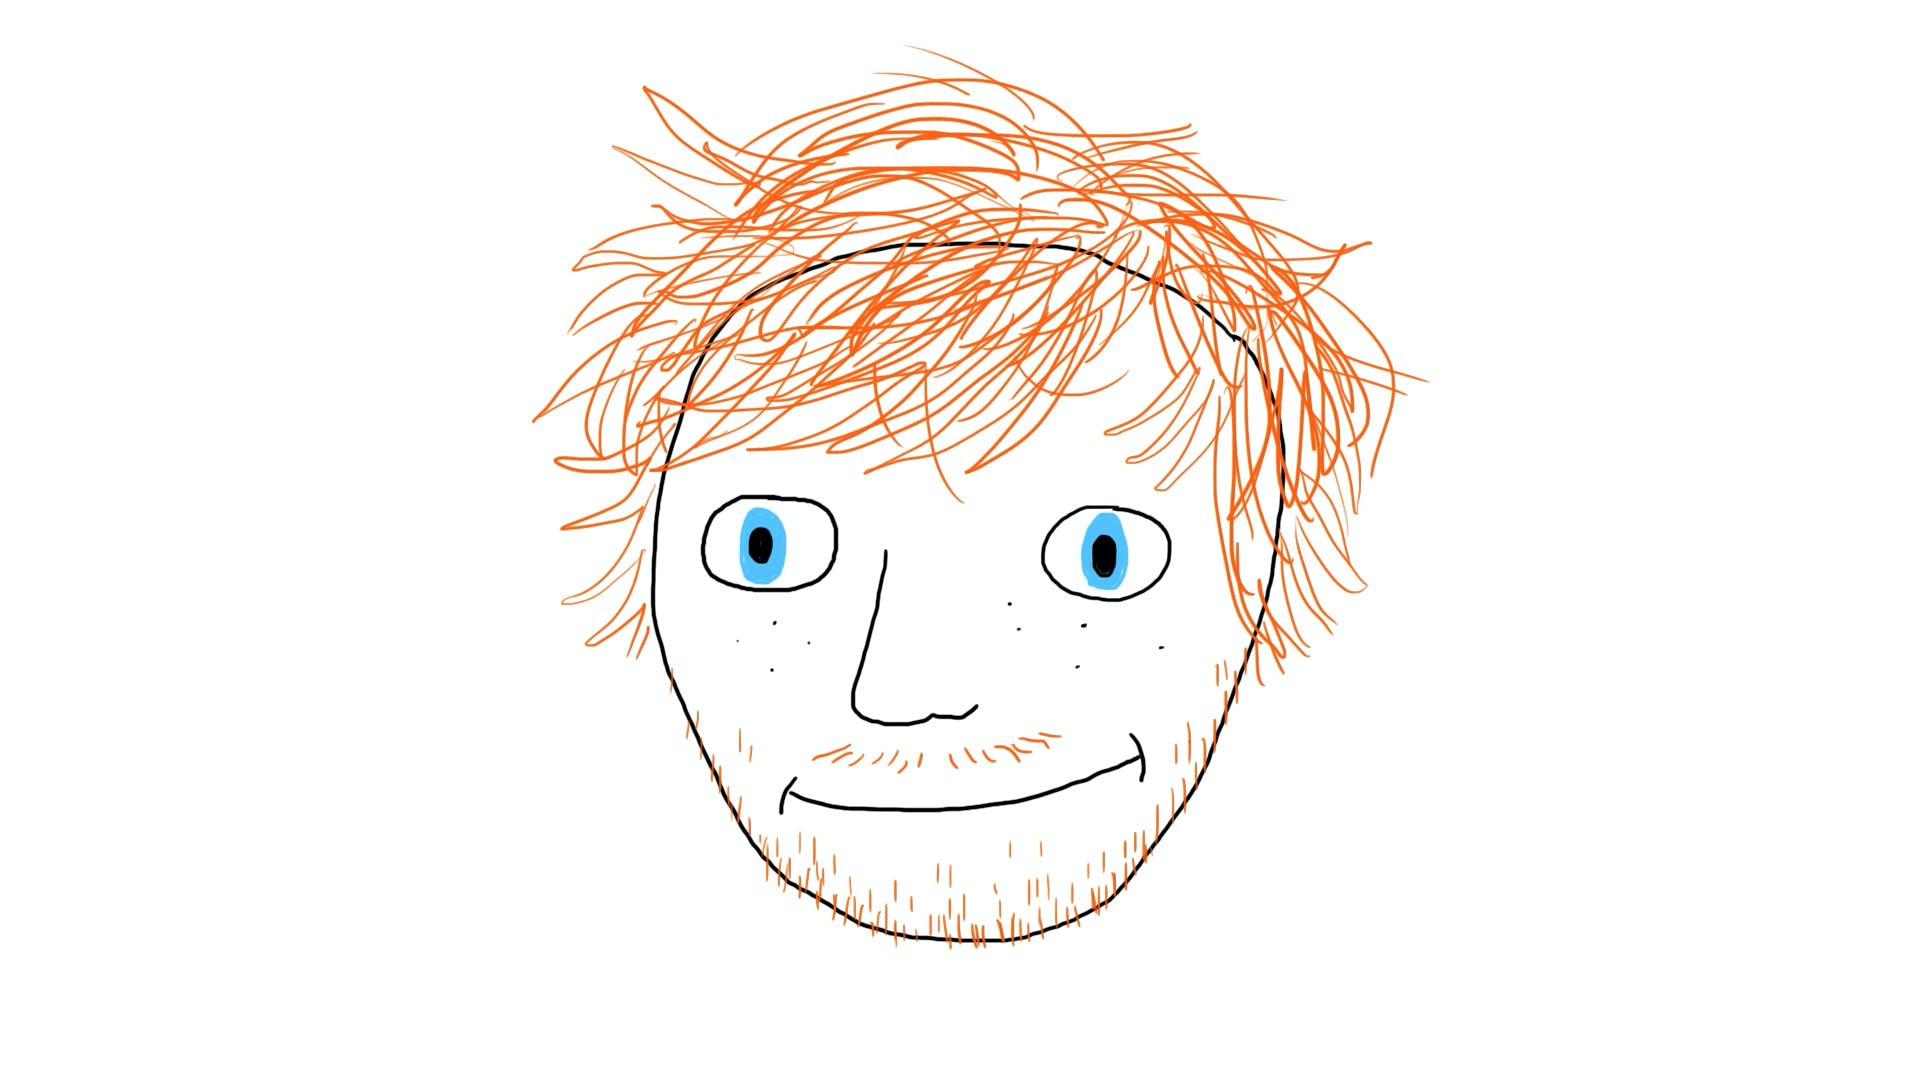 Ed Sheeran drawing with hair